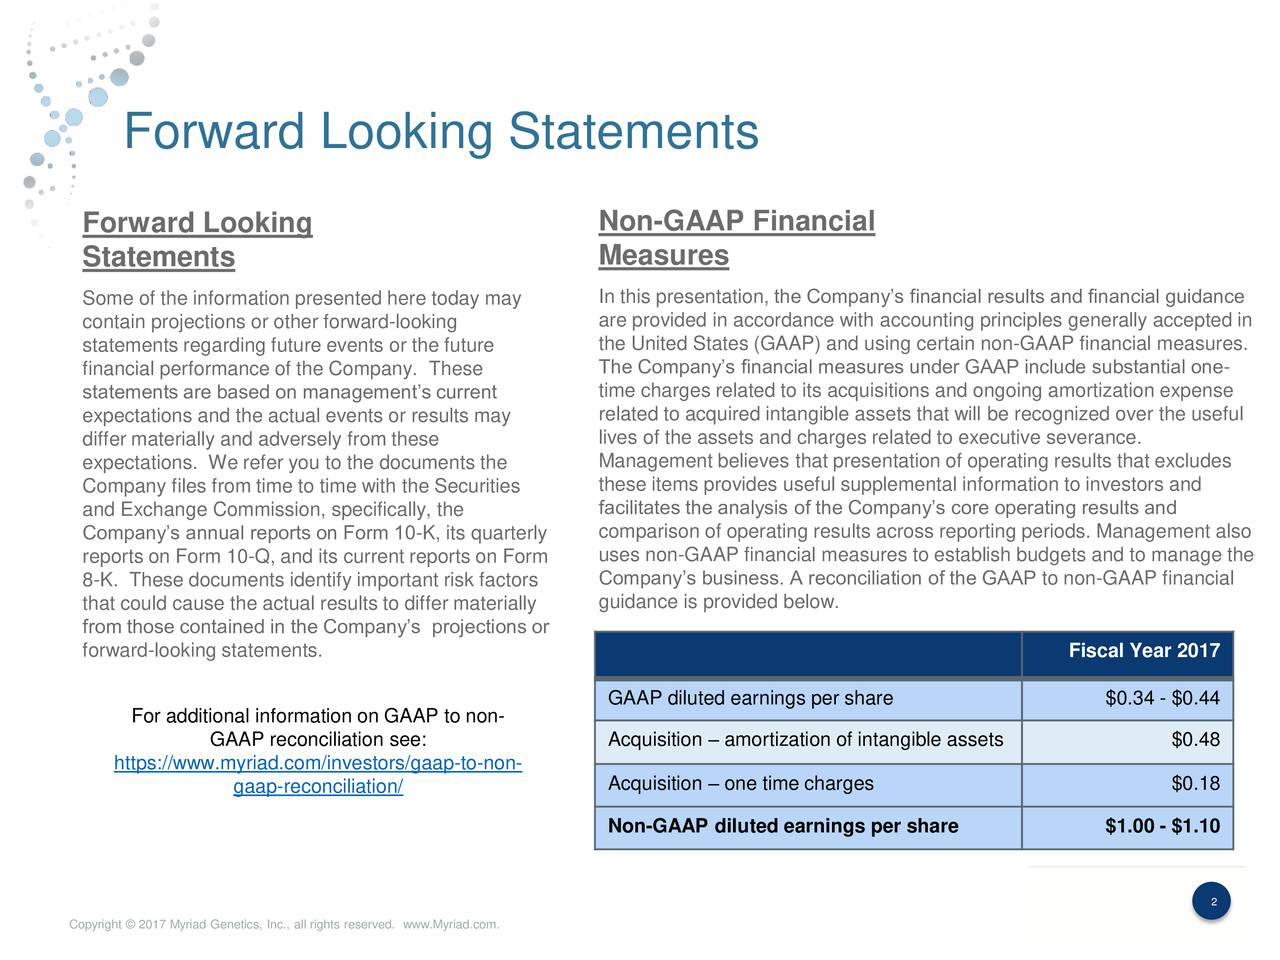 Forward Looking Non-GAAP Financial Statements Measures Some of the information presented here today may In this presentation, the Companys financial results and financial guidance contain projections or other forward-looking are provided in accordance with accounting principles generally accepted in statements regarding future events or the future the United States (GAAP) and using certain non-GAAP financial measures. financial performance of the Company. These The Companys financial measures under GAAP include substantial one- time charges related to its acquisitions and ongoing amortization expense statements are based on managements current expectations and the actual events or results may related to acquired intangible assets that will be recognized over the useful differ materially and adversely from these lives of the assets and charges related to executive severance. expectations. We refer you to the documents the Management believes that presentation of operating results that excludes Company files from time to time with the Securities these items provides useful supplemental information to investors and and Exchange Commission, specifically, the facilitates the analysis of the Companys core operating results and Companys annual reports on Form 10-K, its quarterly comparison of operating results across reporting periods. Management also uses non-GAAP financial measures to establish budgets and to manage the reports on Form 10-Q, and its current reports on Form 8-K. These documents identify important risk factors Companys business. A reconciliation of the GAAP to non-GAAP financial that could cause the actual results to differ materiallyguidance is provided below. from those contained in the Companys projections or forward-looking statements. Fiscal Year 2017 GAAP diluted earnings per share $0.34 - $0.44 For additional information on GAAP to non- GAAP reconciliation see: Acquisition  amortization of intangible assets $0.48 https://www.myriad.com/investors/gaap-to-non- gaap-reconciliation/ Acquisition  one time charges $0.18 Non-GAAP diluted earnings per share $1.00 - $1.10 2 Copyright  2017 Myriad Genetics, Inc., all rights reserved. www.Myriad.com.